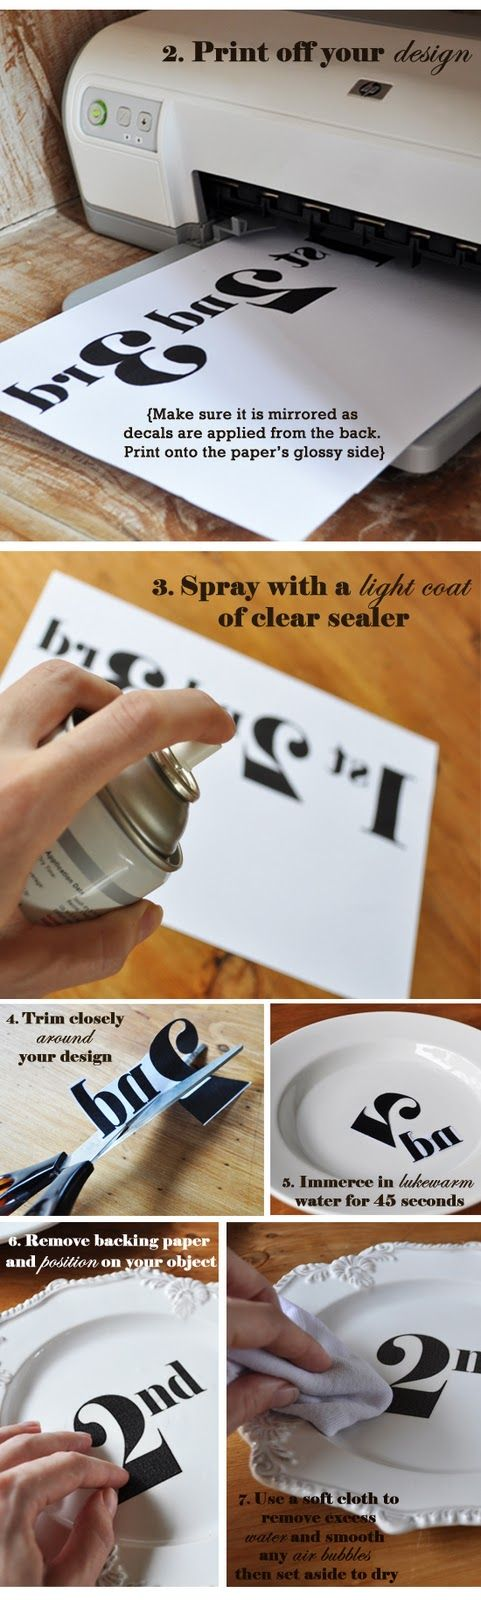 DIY decal how to